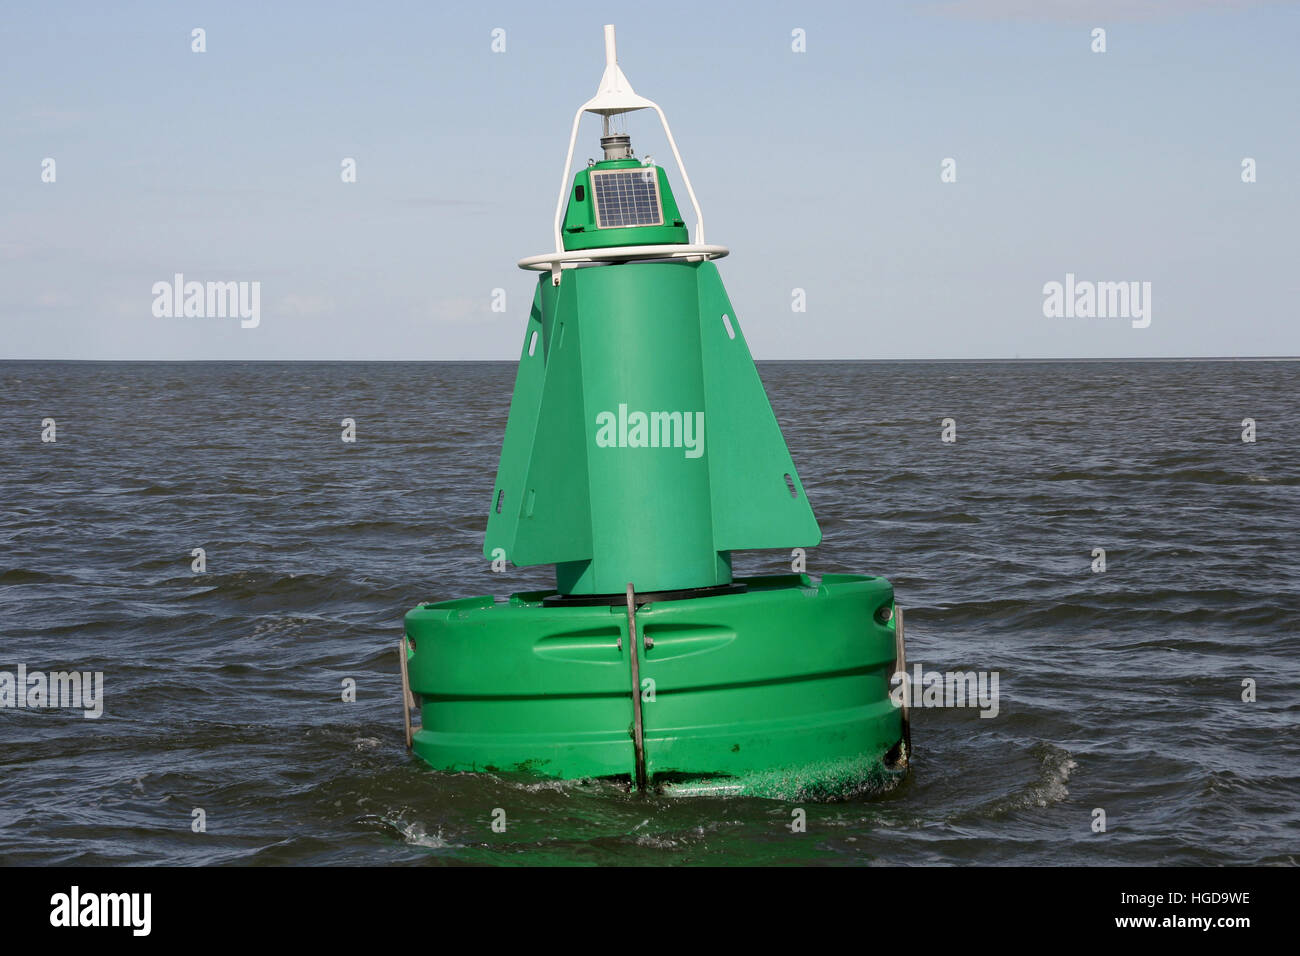 A green channel marker buoy in the water. - Stock Image